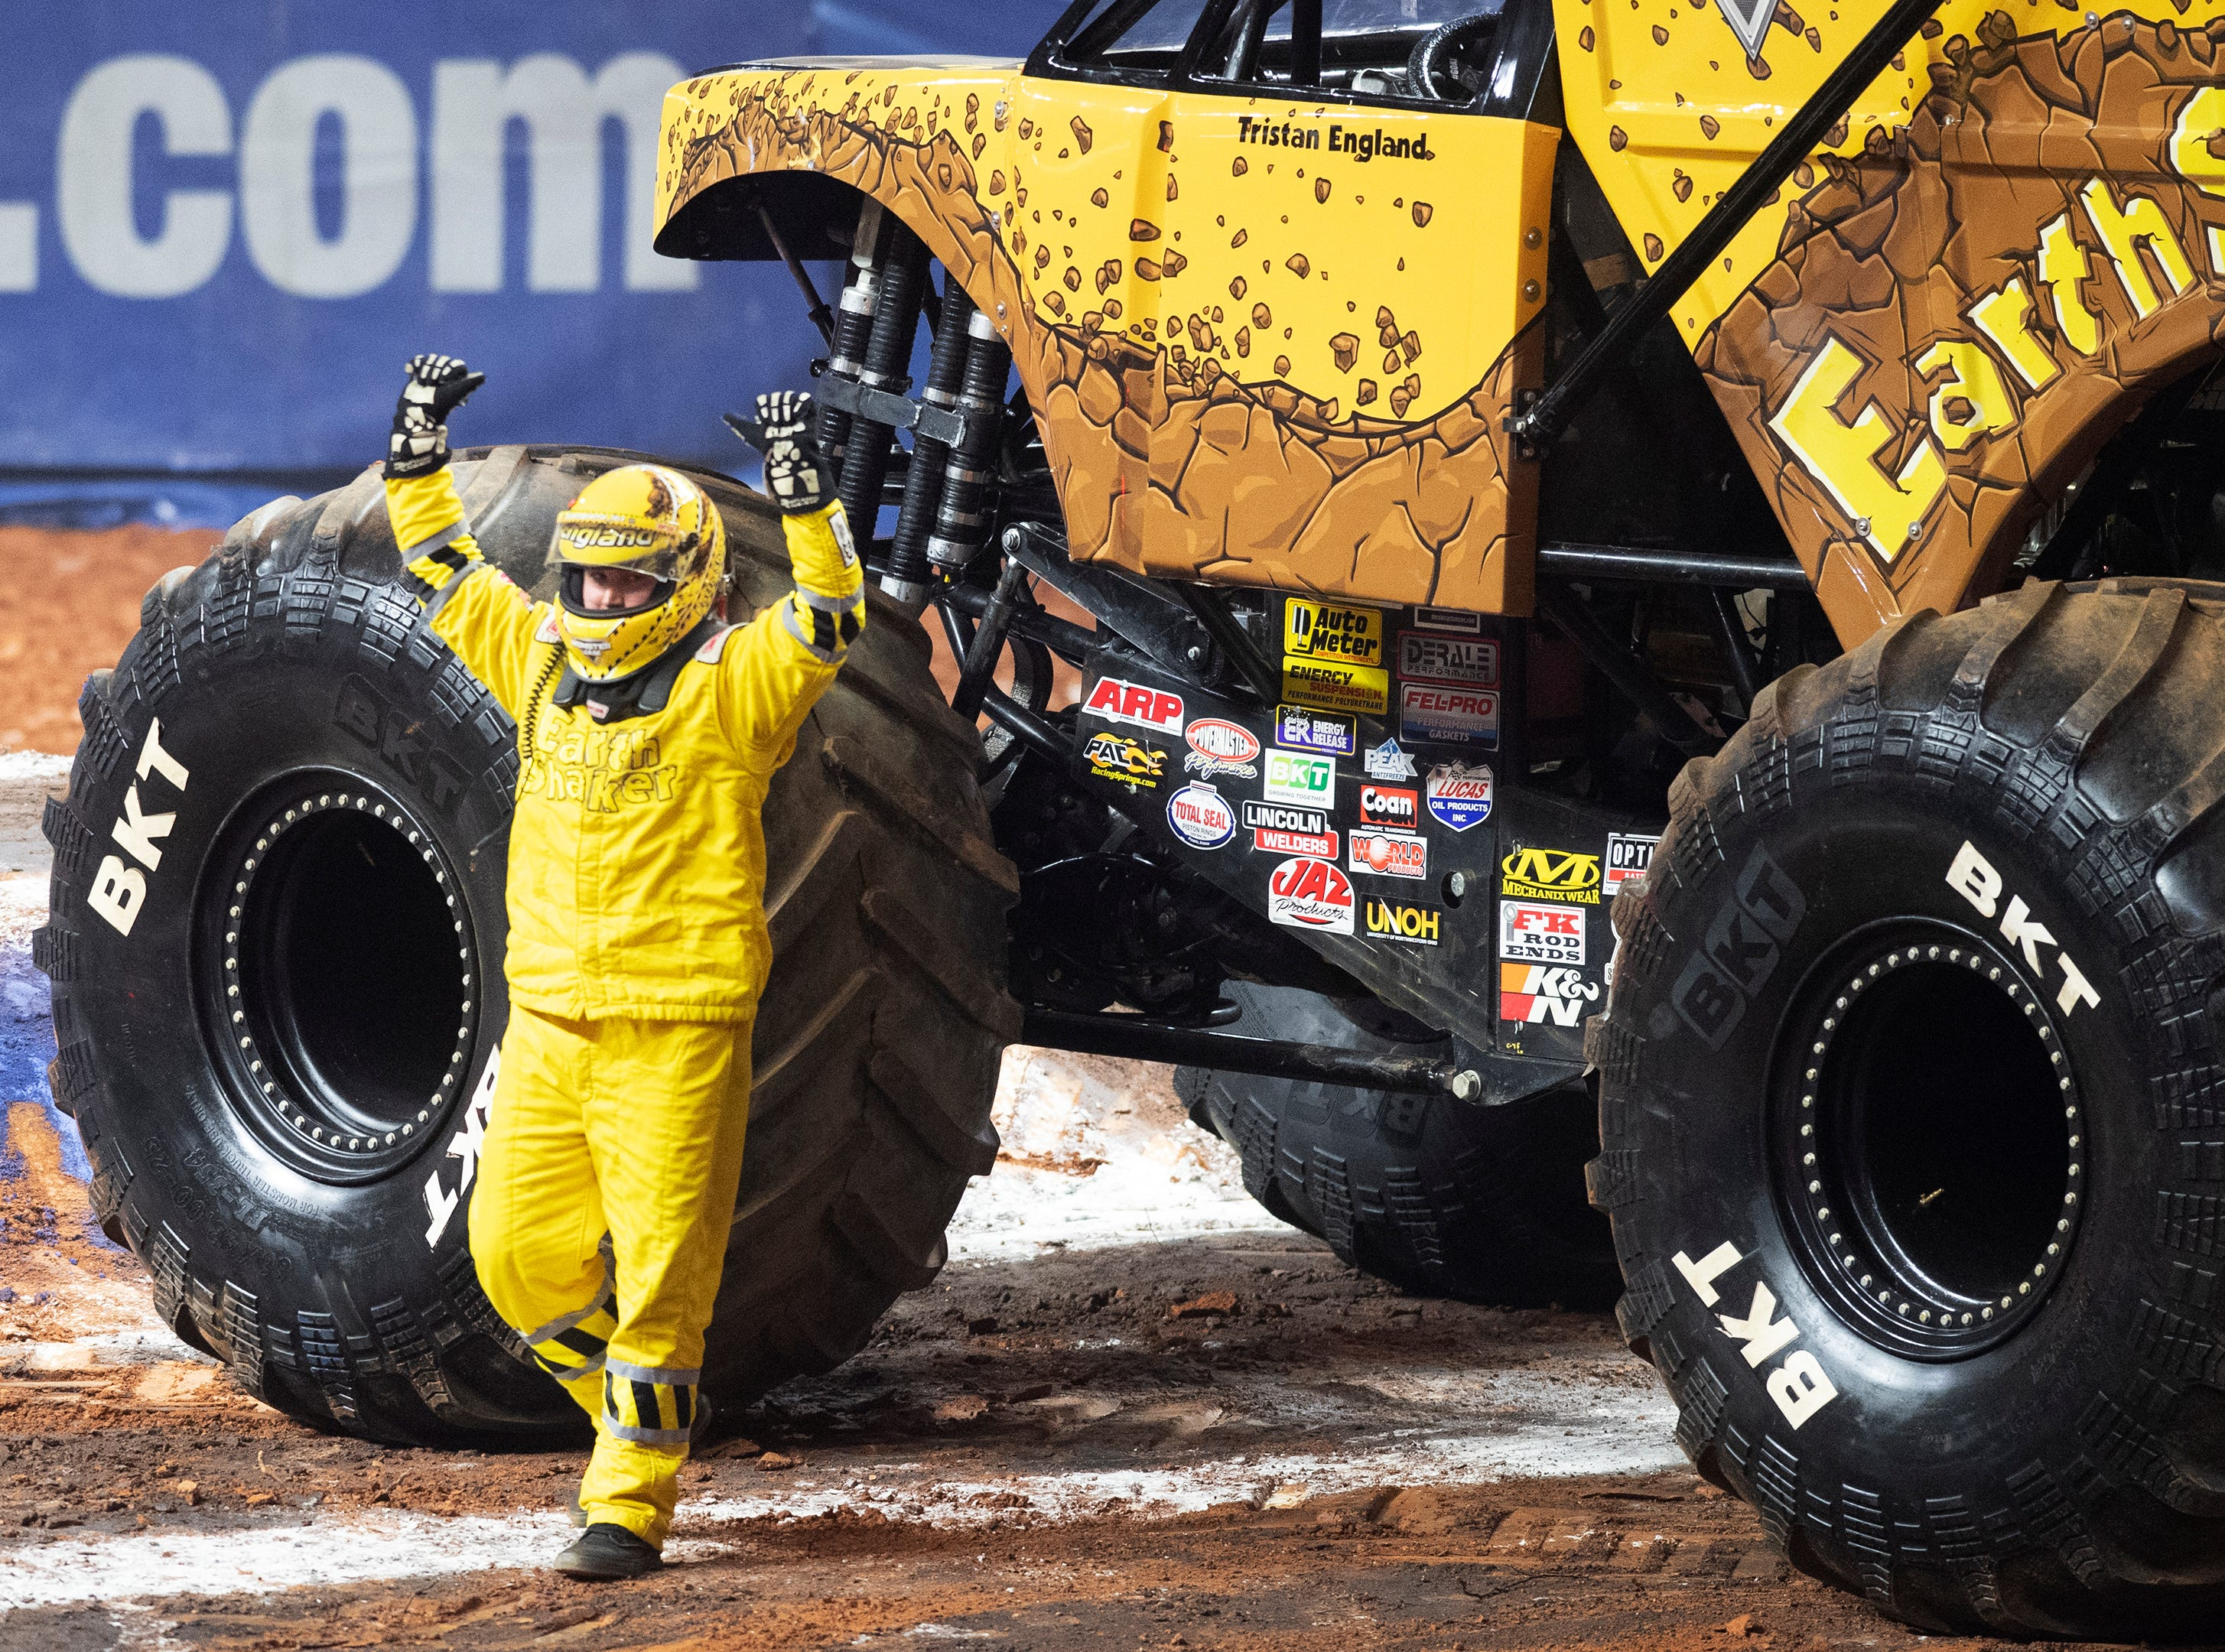 Tristan England won the first round racing in the Earth Shaker during Monster Jam at Bon Secours Wellness Arena Friday, Feb. 8, 2019.